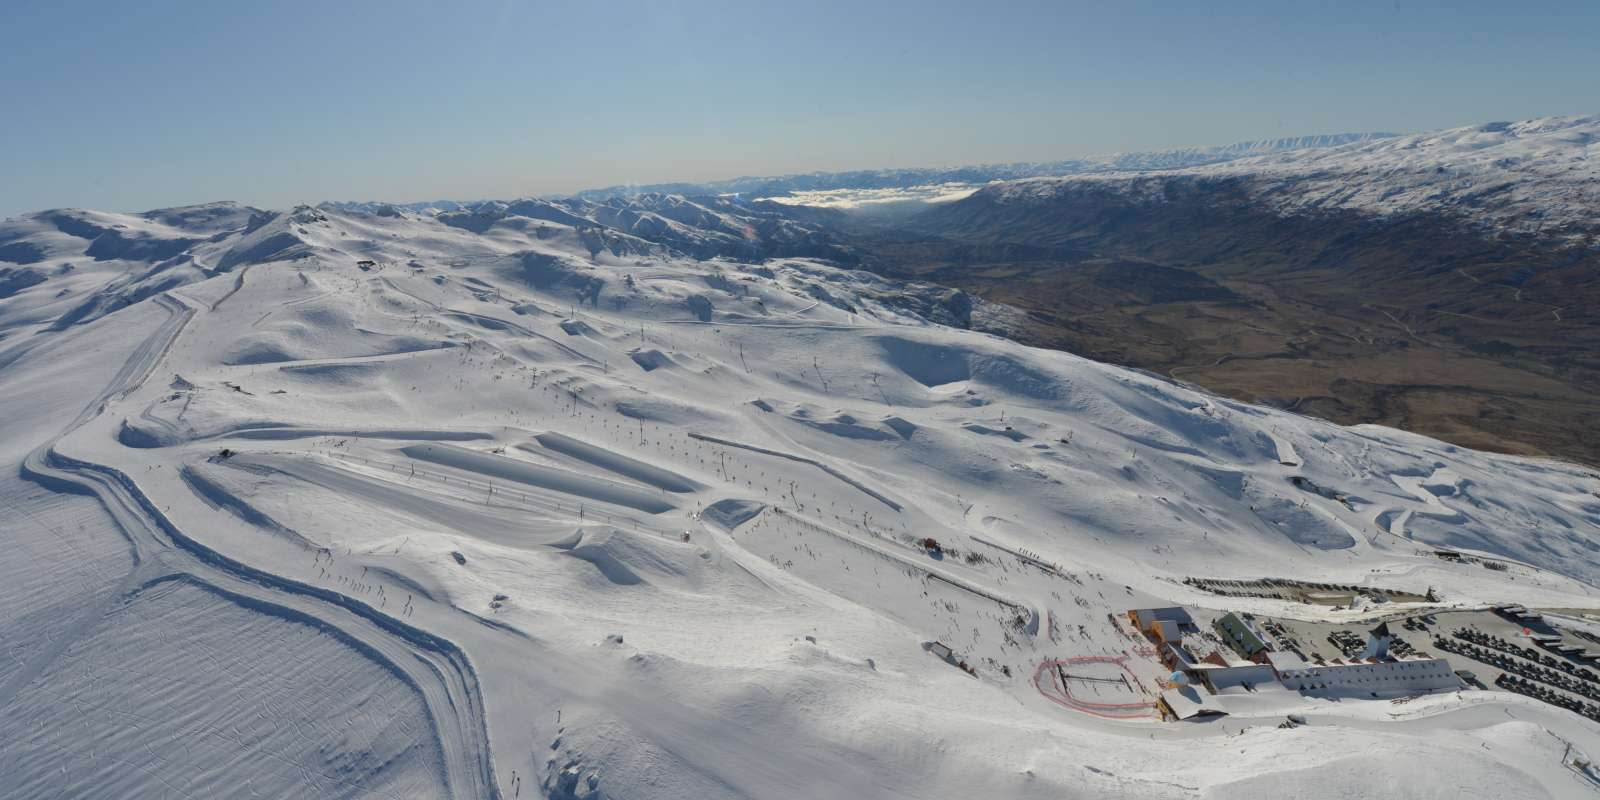 Cardrona Alpine Resort Aerial View Above Base